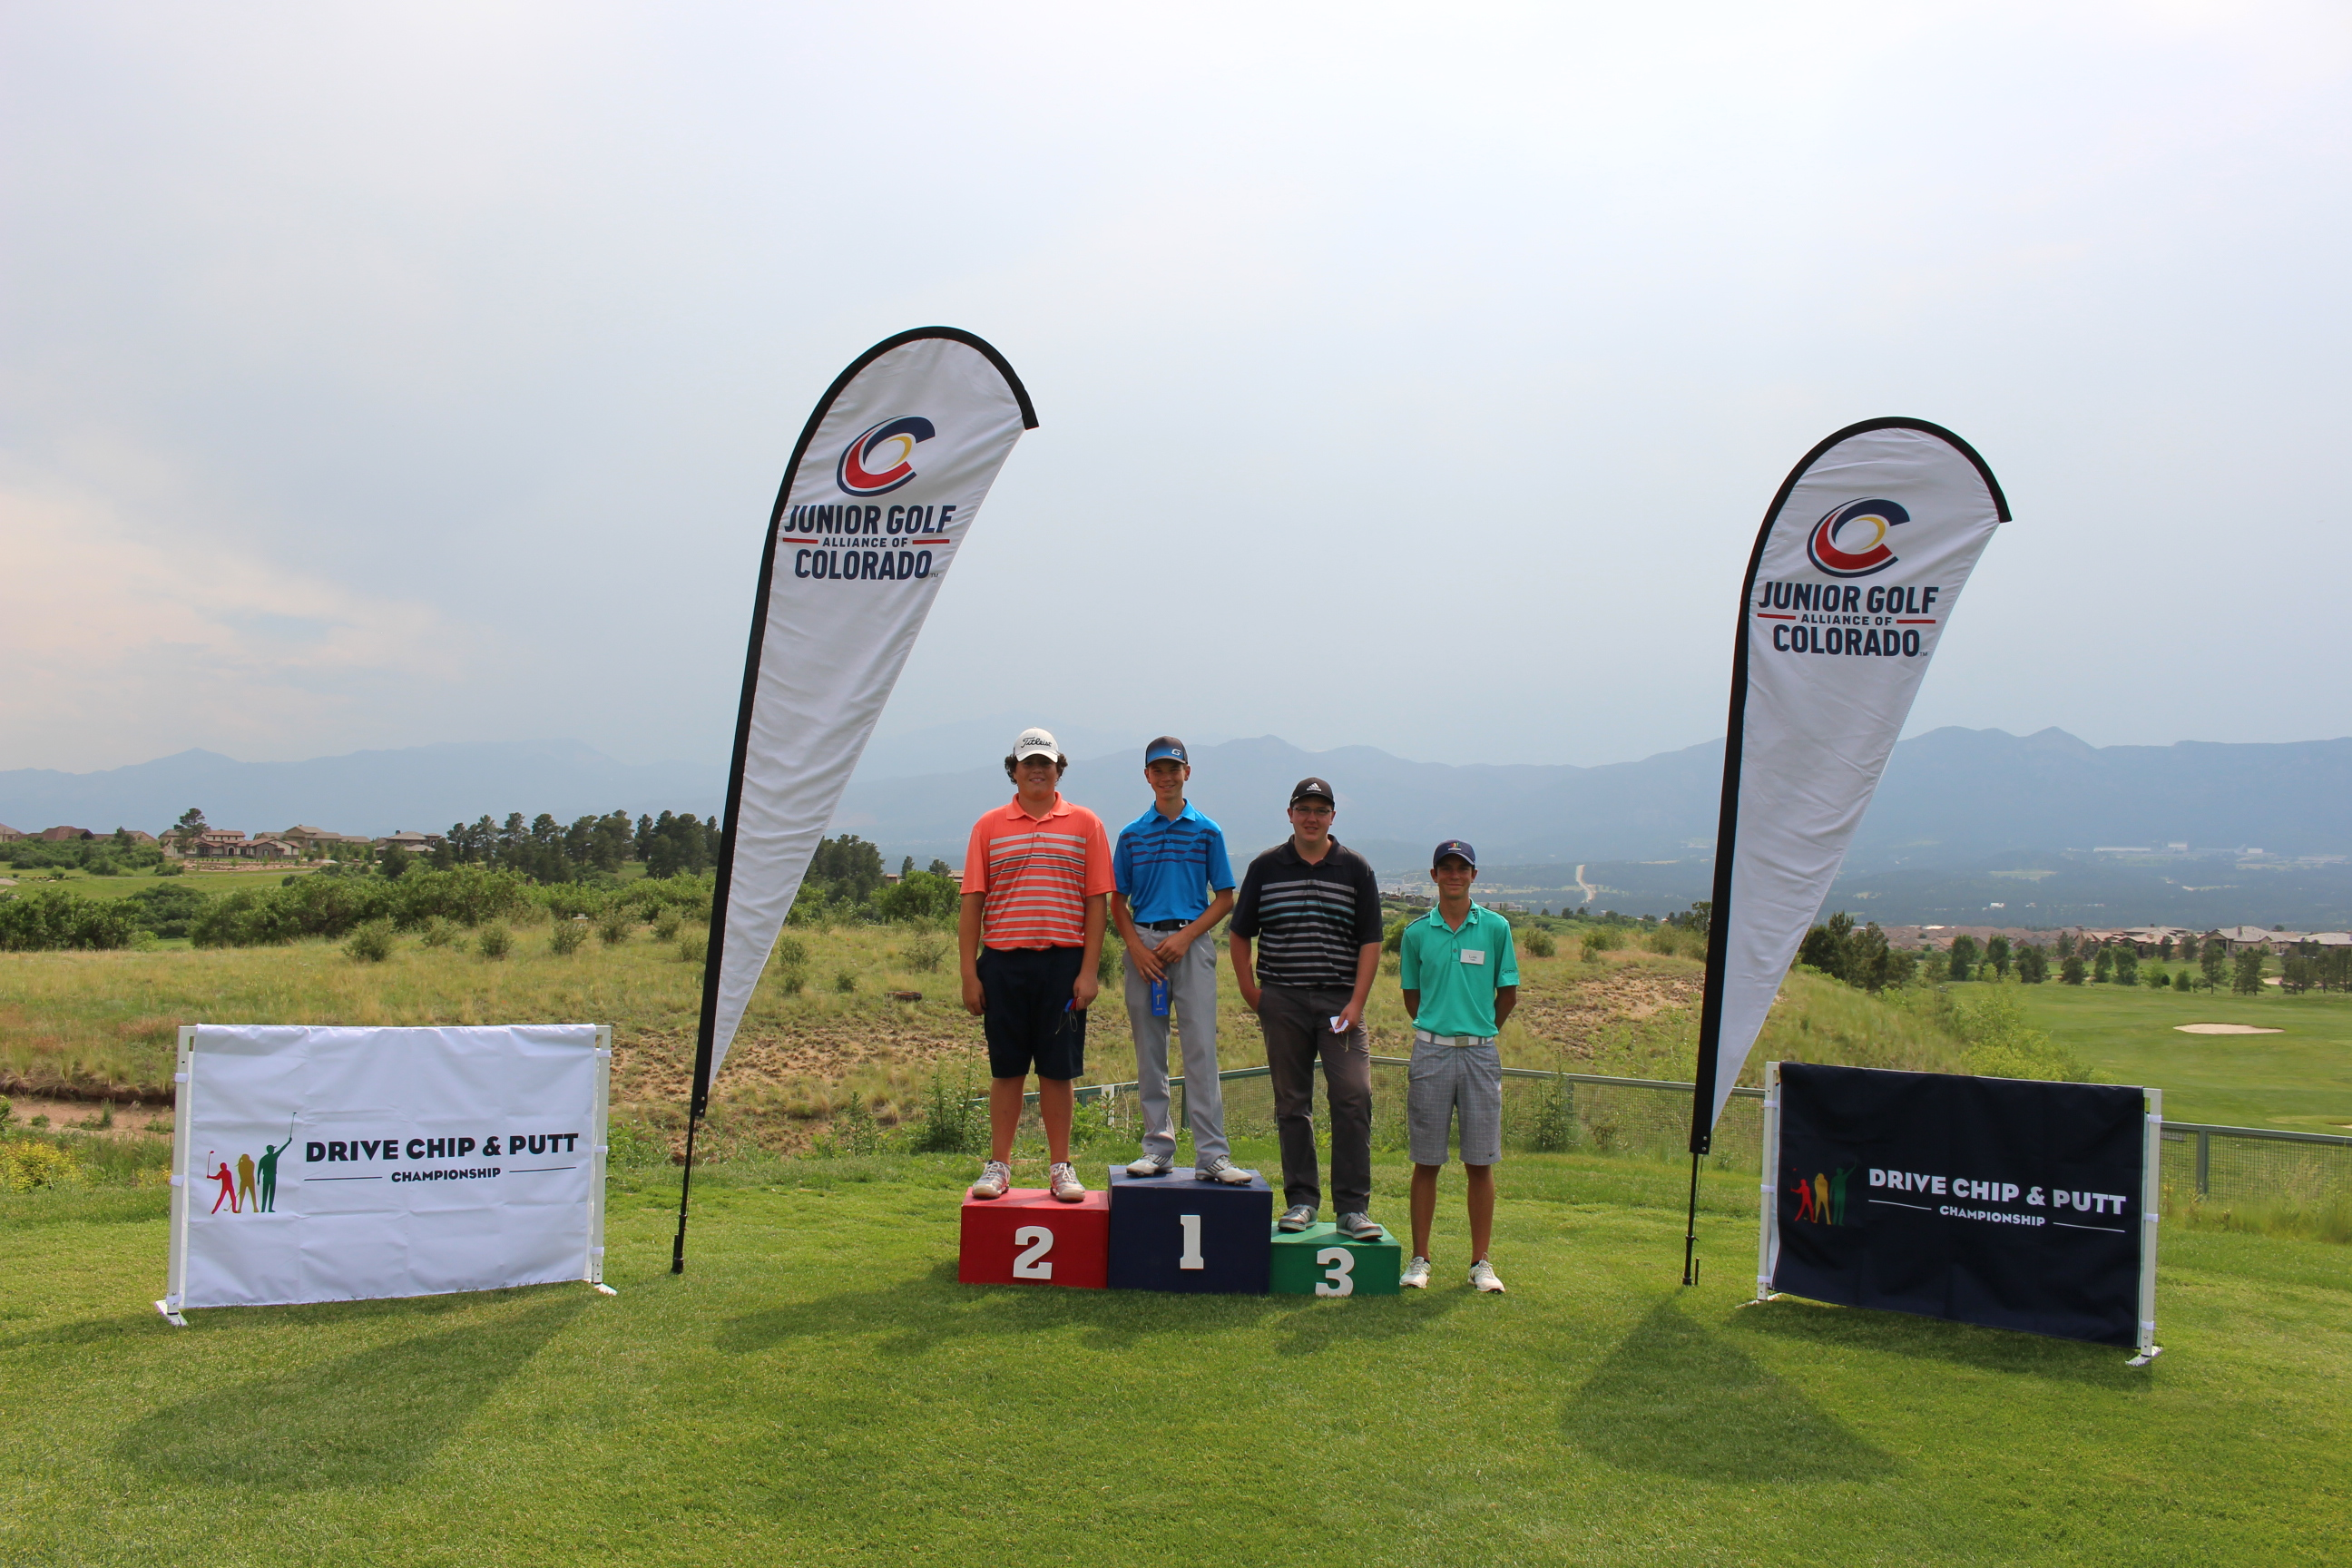 Drive, Chip and Putt Makes Southern Swing Through Pikes Peak Region